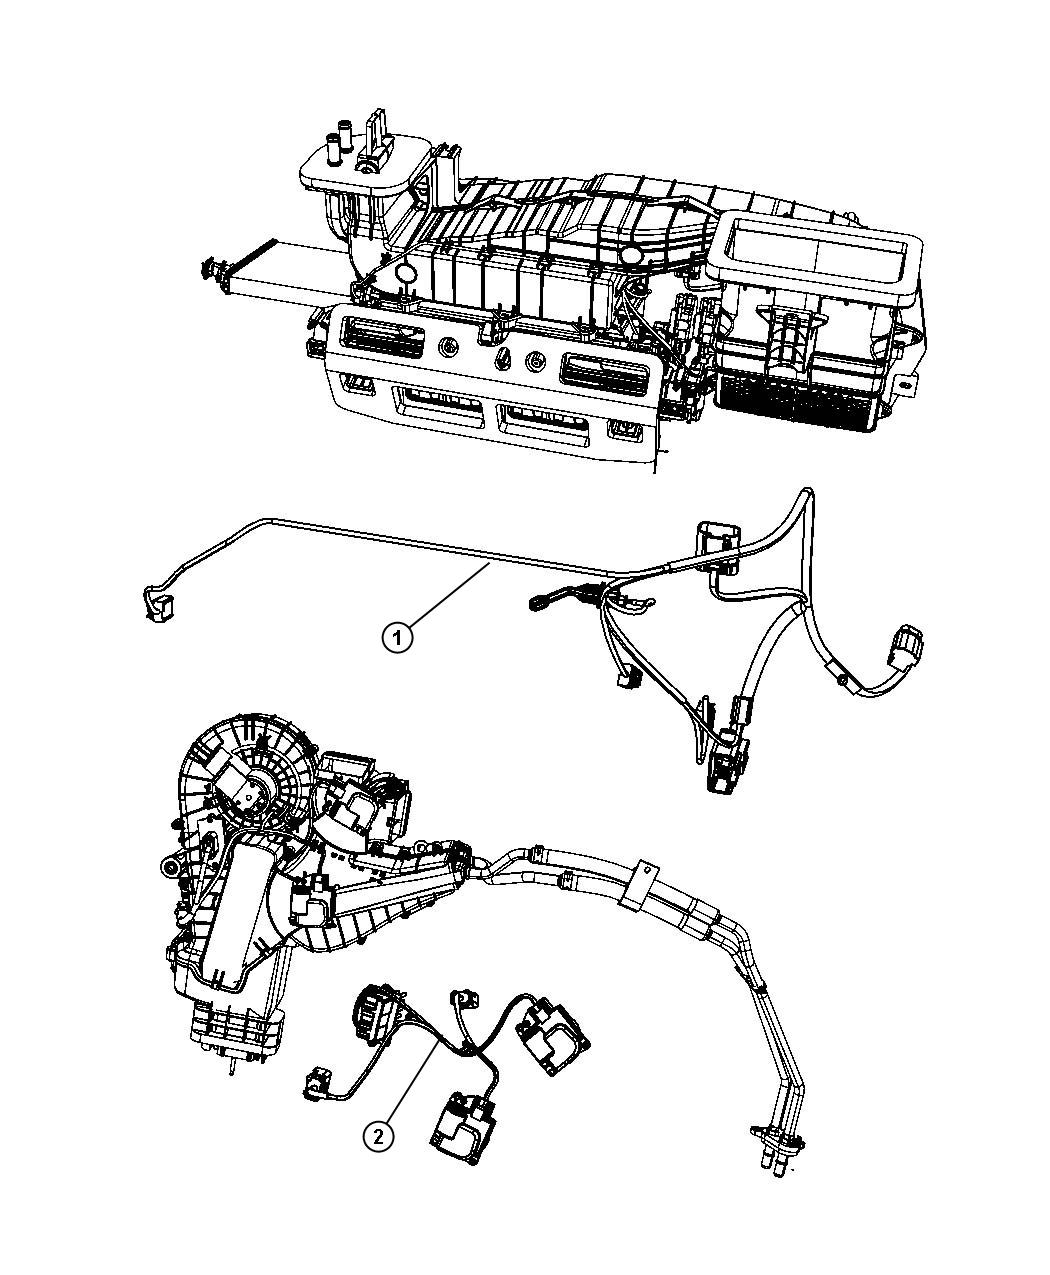 Dodge Grand Caravan Wiring. Used for: a/c and heater. Rear